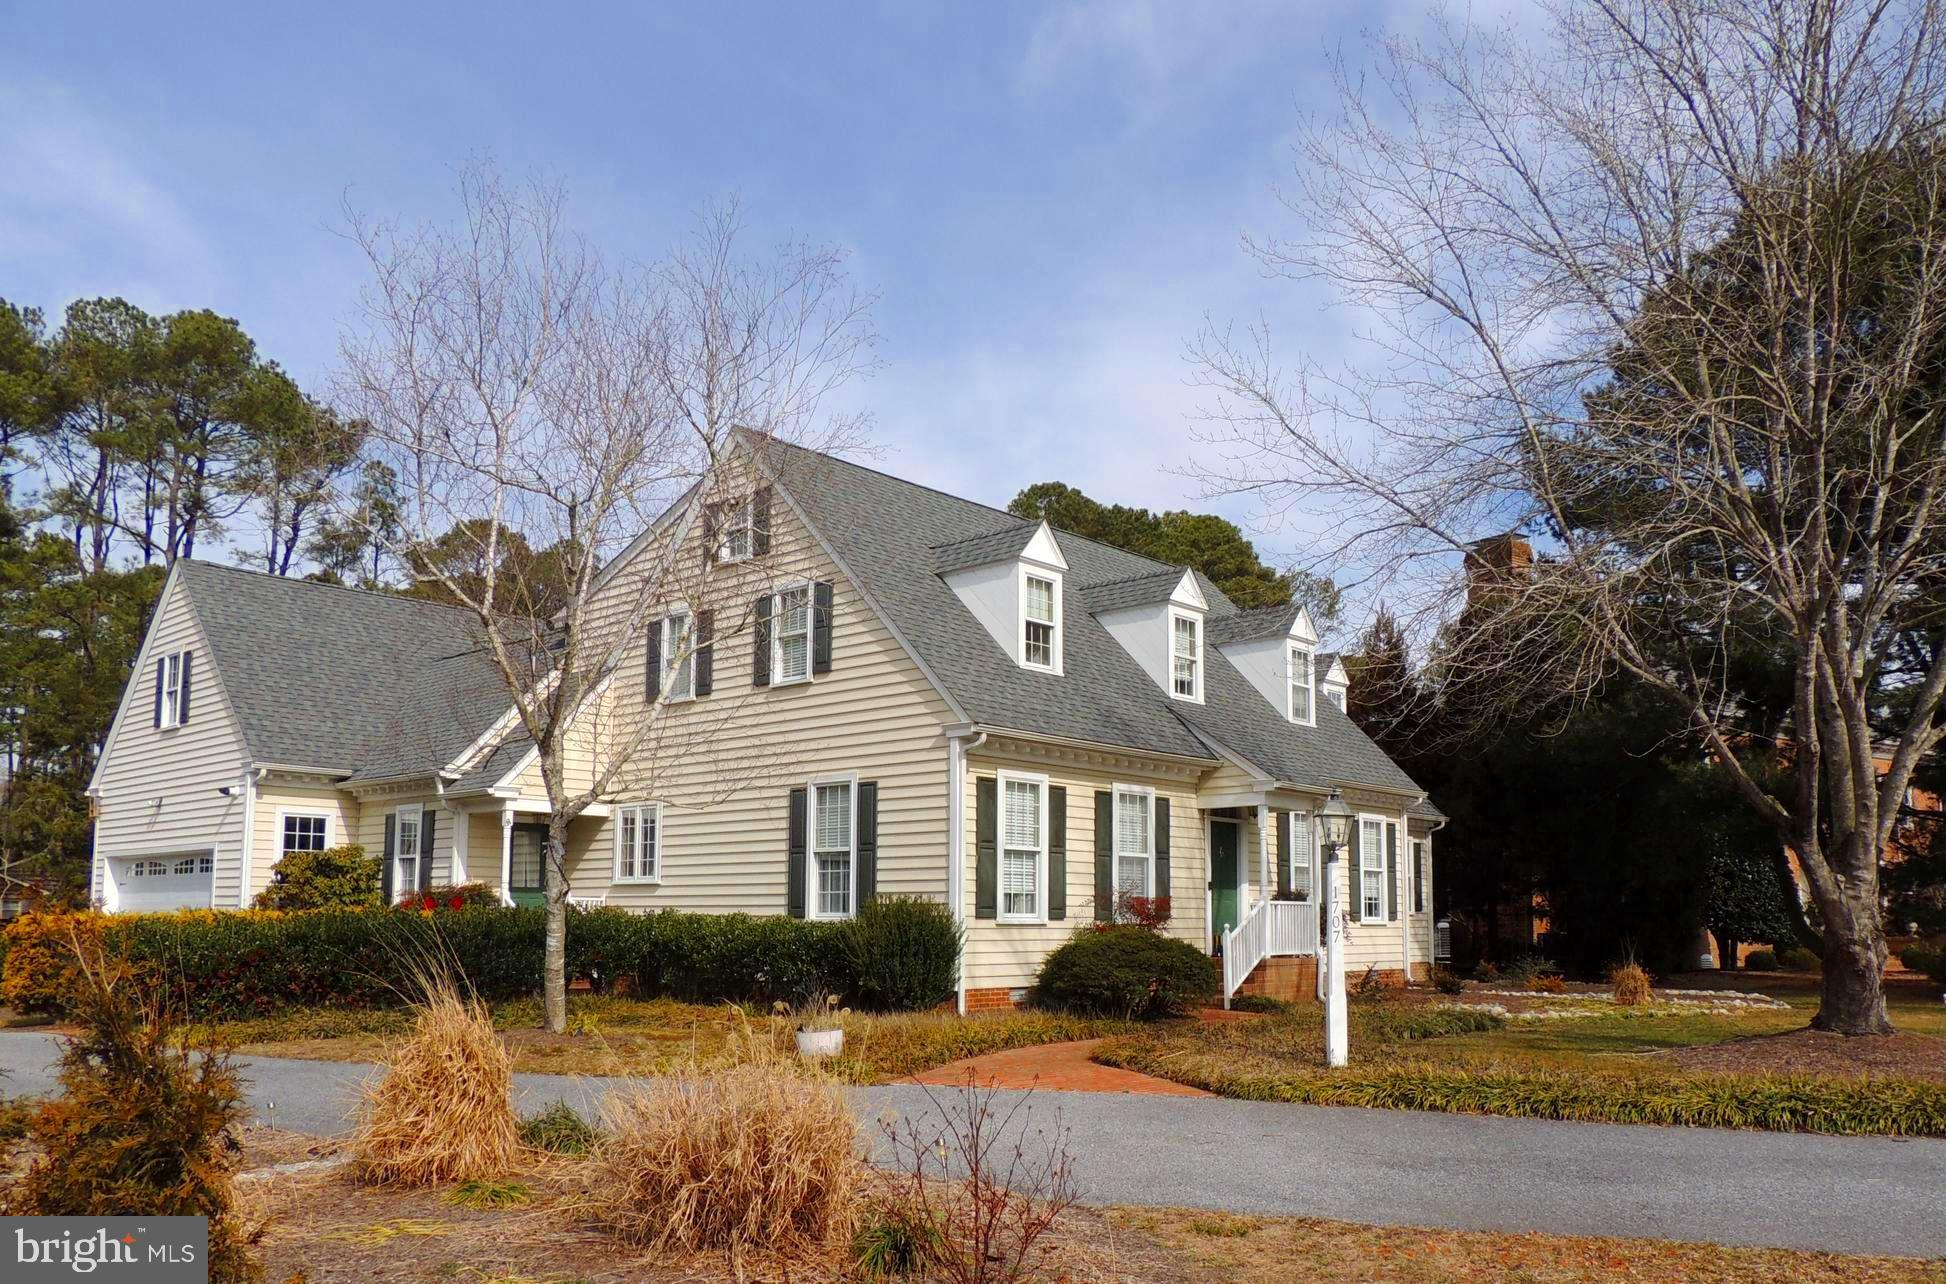 Beautiful cape cod style home with detailed craftmanship in the highly desired Brafferton community.